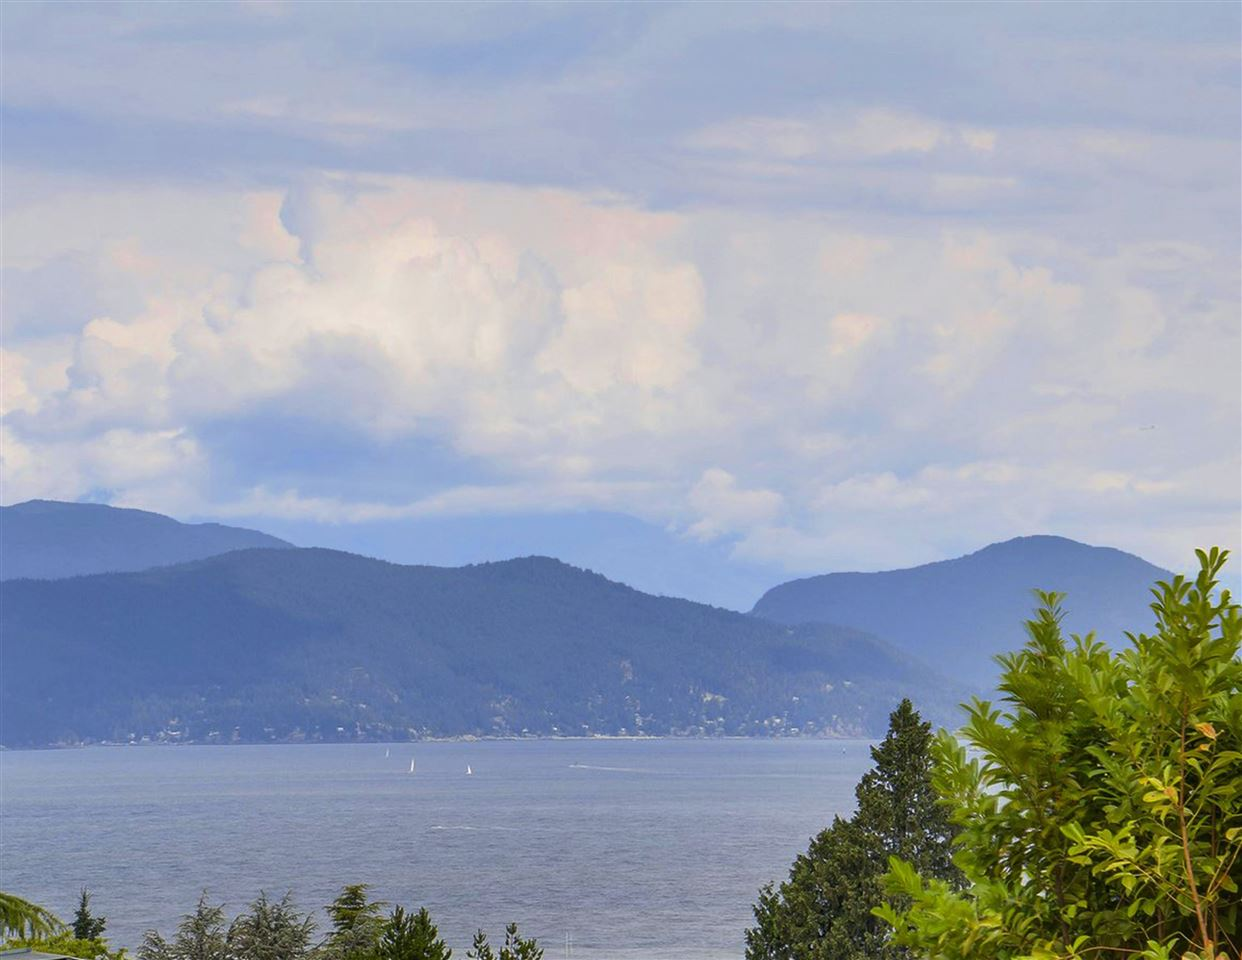 An outstanding opportunity to build a home embracing unlimited luxury. Rarely available prime freehold flat building lot in the prestigious University Endowment Lands. Private 100'x204' boasts both stunning water & North Shore mountain views. Close to UBC, easy access to all amenities and to Vancouver's city centre via 4th or 10th avenues. Close to Spanish Banks, Locarno, Jericho & Kitsilano beaches, Pacific Spirit Trail, public & private golf clubs, public schools & some of BC's most prominent private schools. The 3632 SF home may be rented providing opportunity for future investment return. However, the property's value is in the land. SF-2 Floor Space Ratio shall not exceed the lesser of .25 of the site area or 7000 sq ft. Potential Buyers must verify.